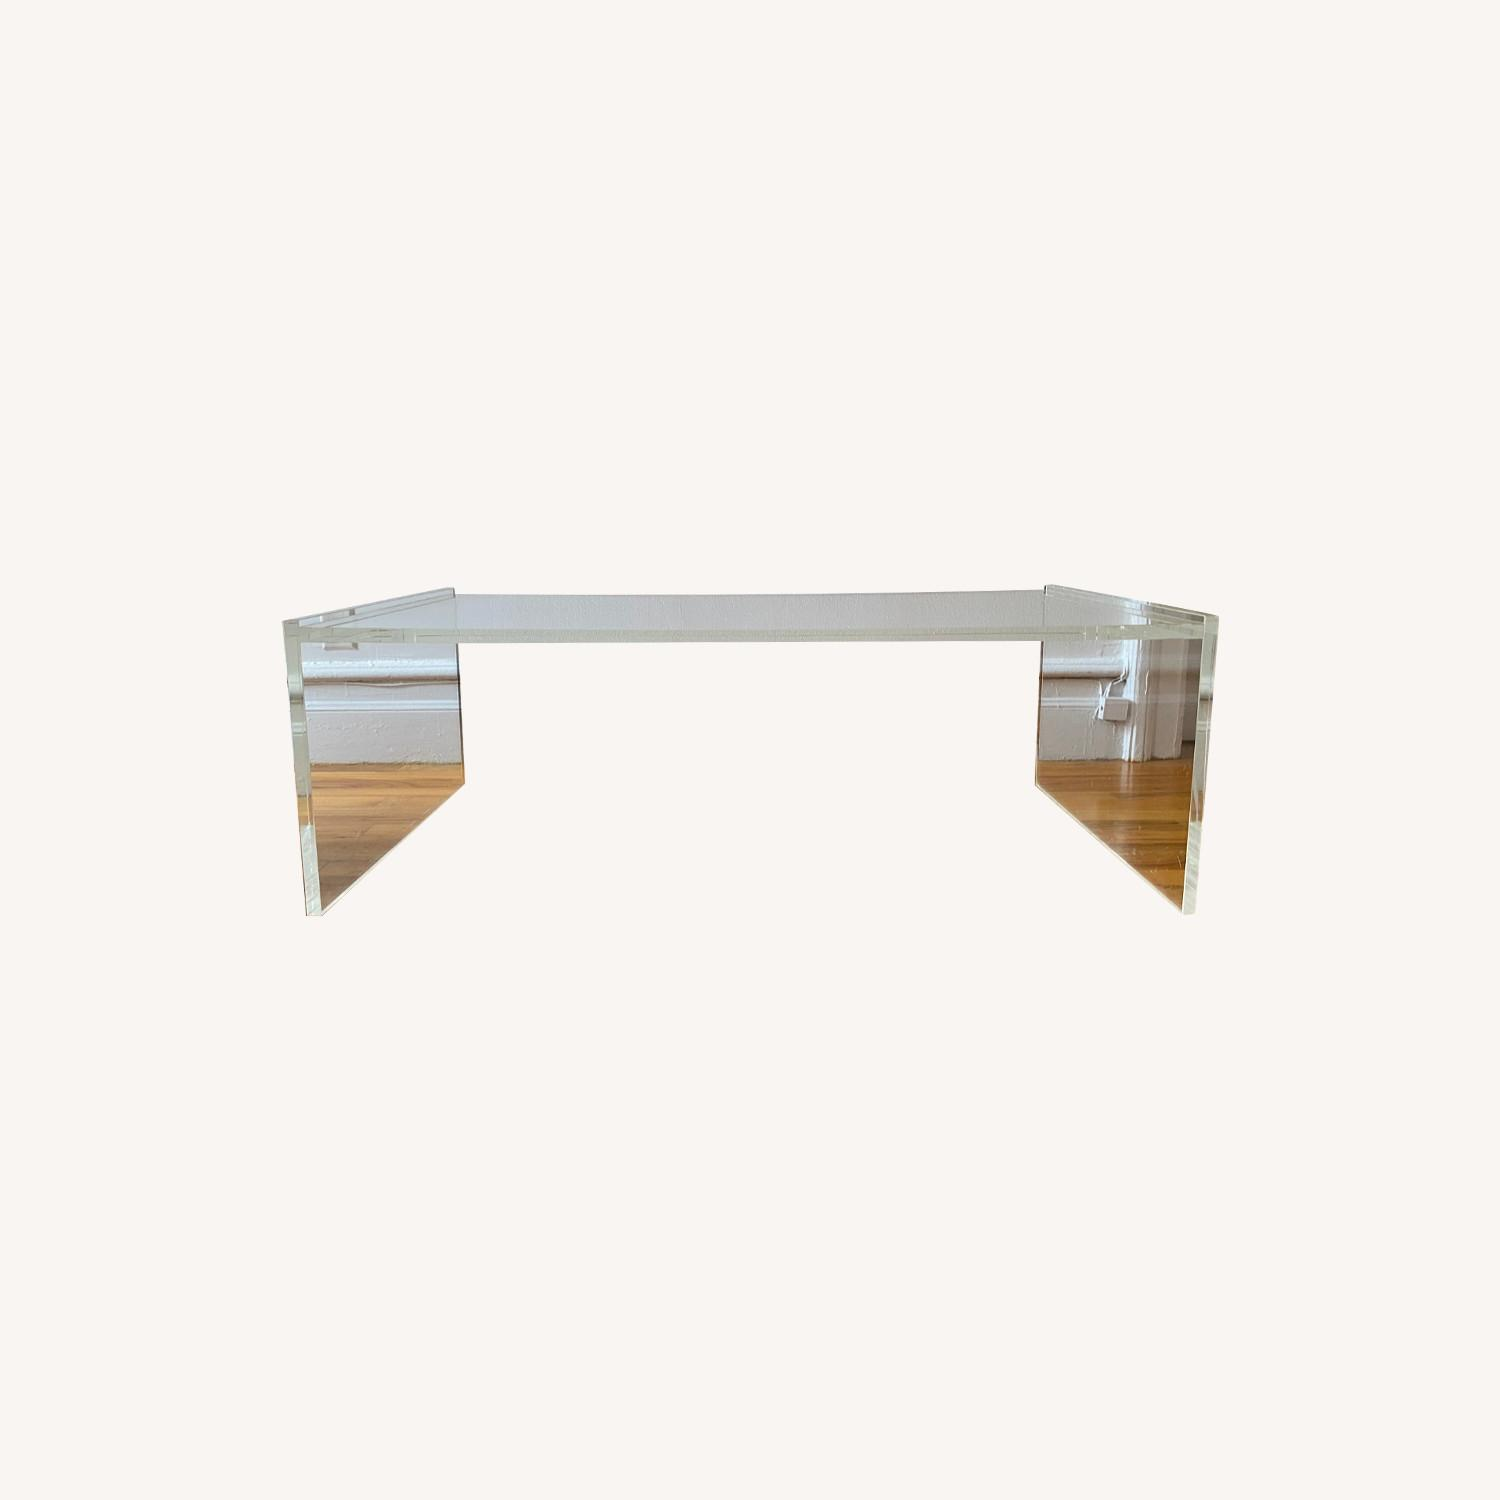 Crate & Barrel Acrylic/Lucite Coffee Table - image-0